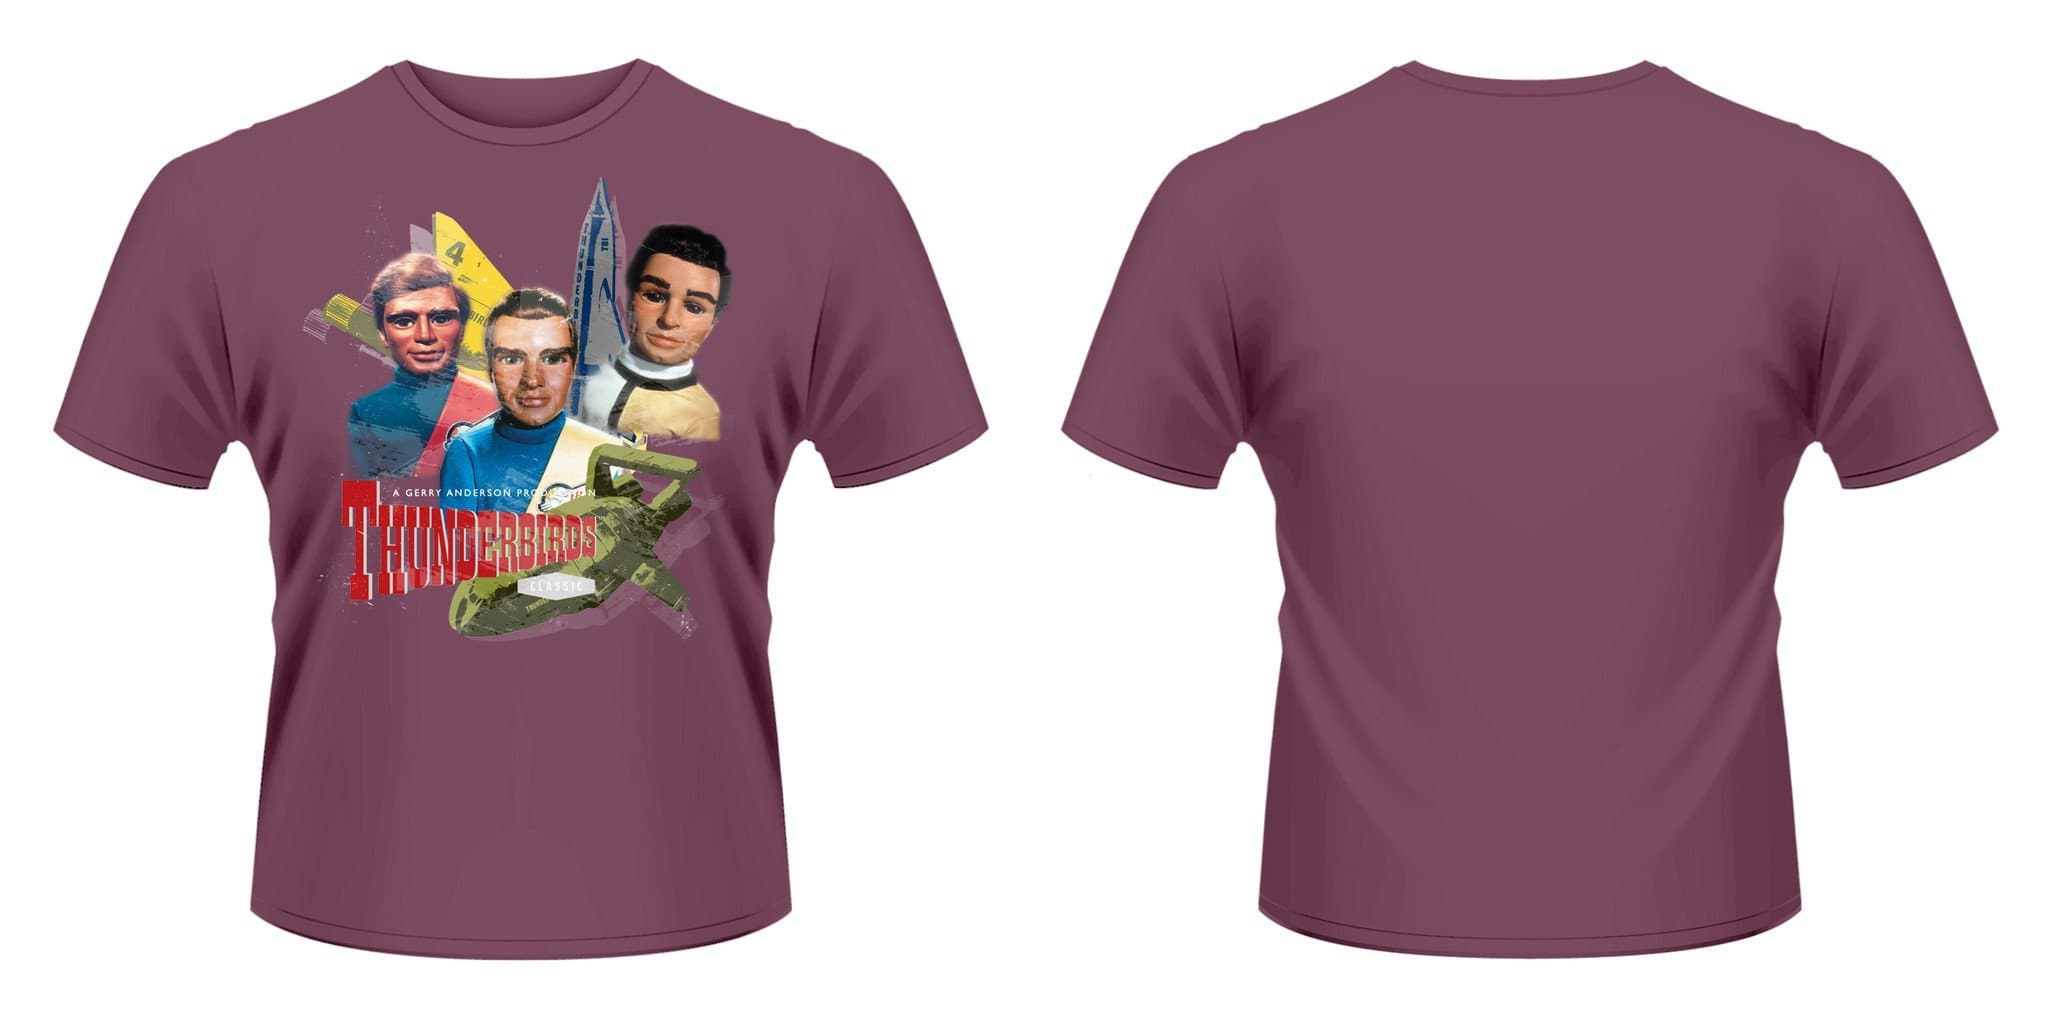 Tracy Brothers - Thunderbirds T-shirt - Gerry Anderson Official - 2